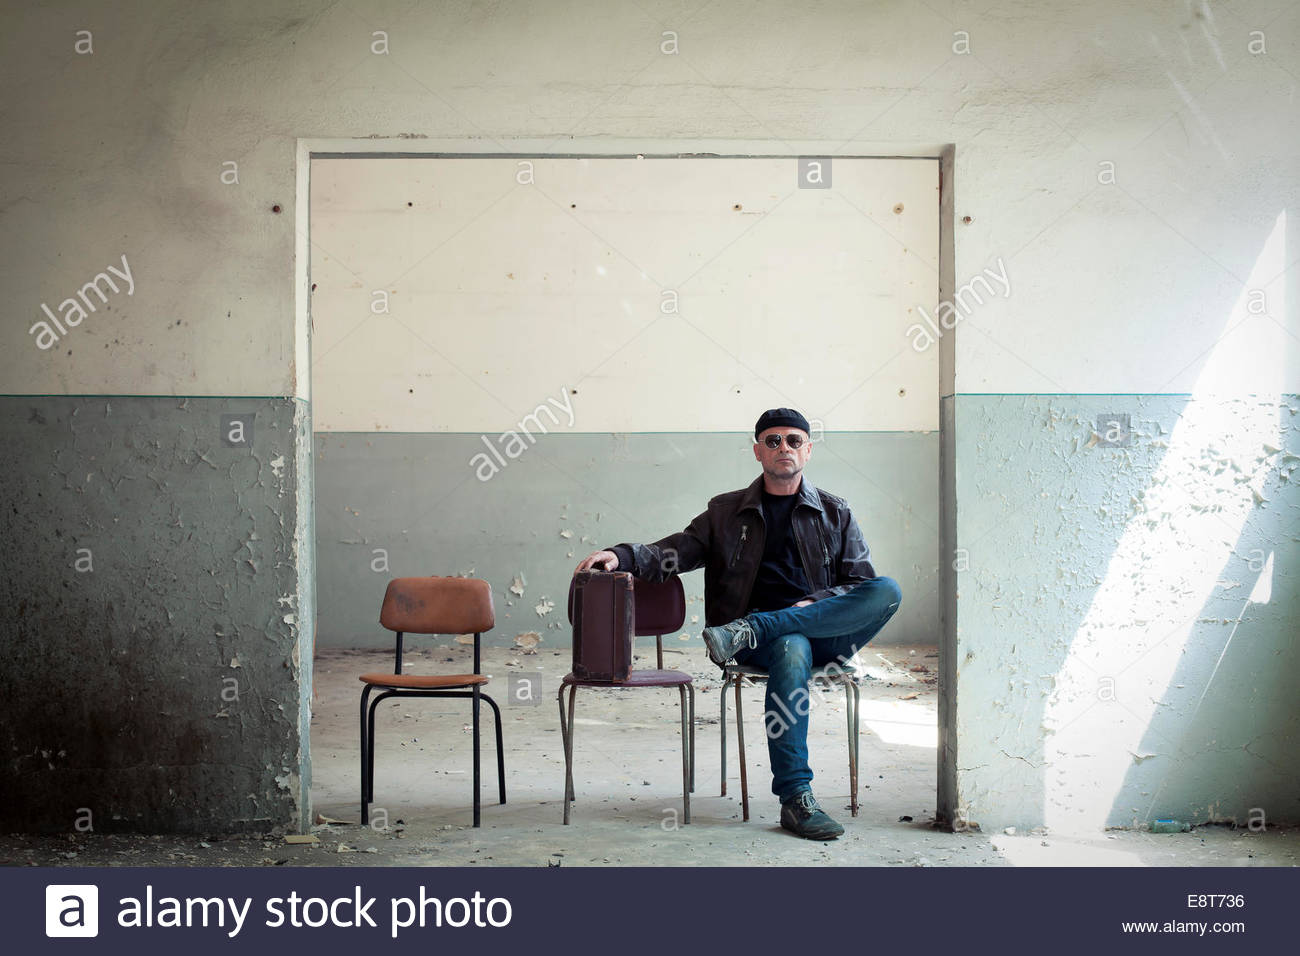 A traveller with a suitcase is sitting in an old building - Stock Image